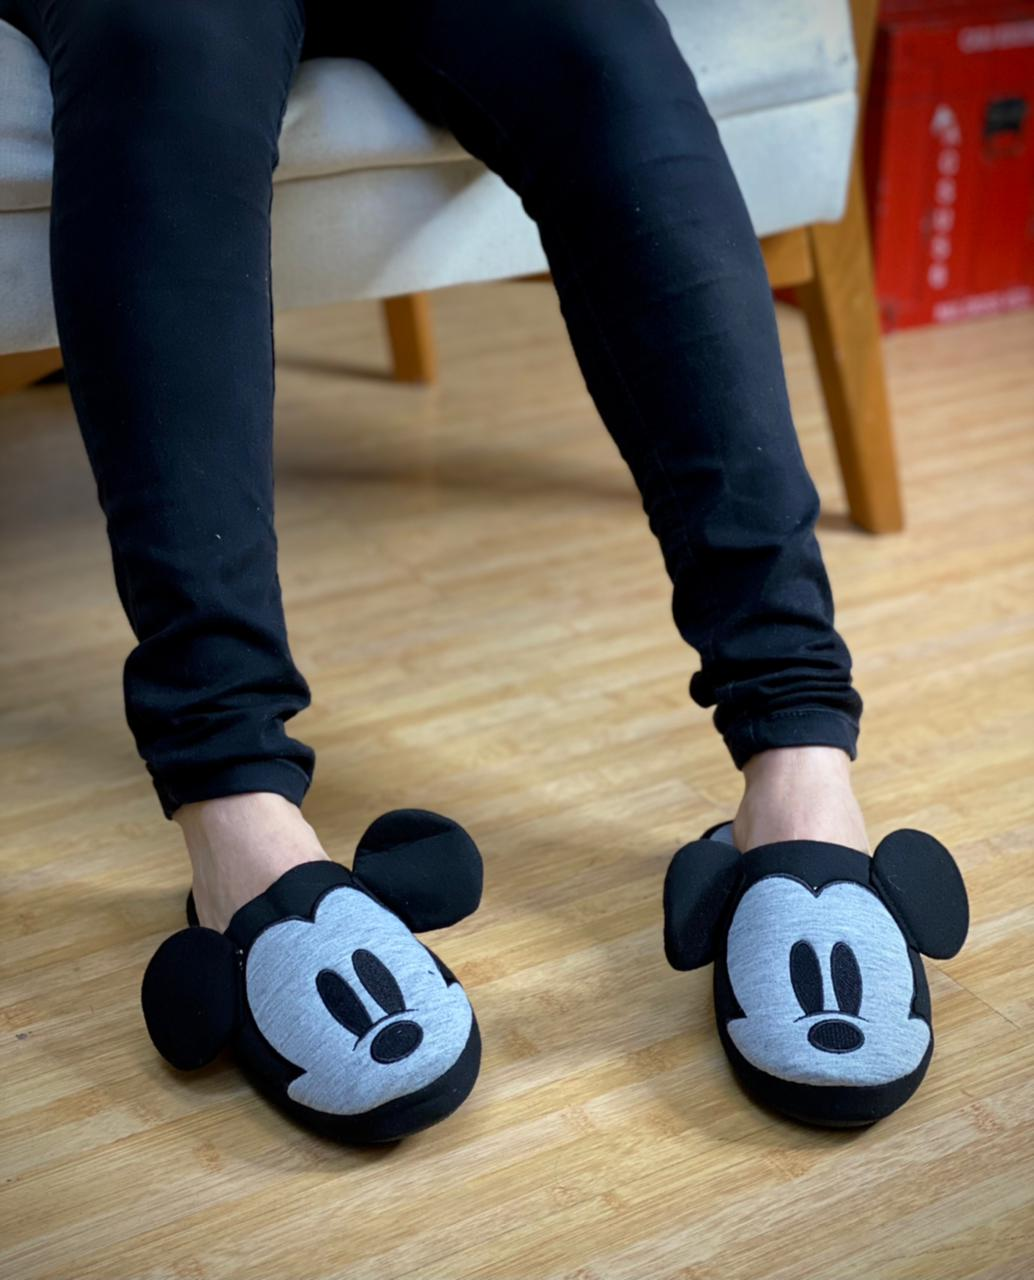 Pantufa/Chinelo De Casa Unissex Mickey Mouse: Mickey e Minnie Mouse - Disney